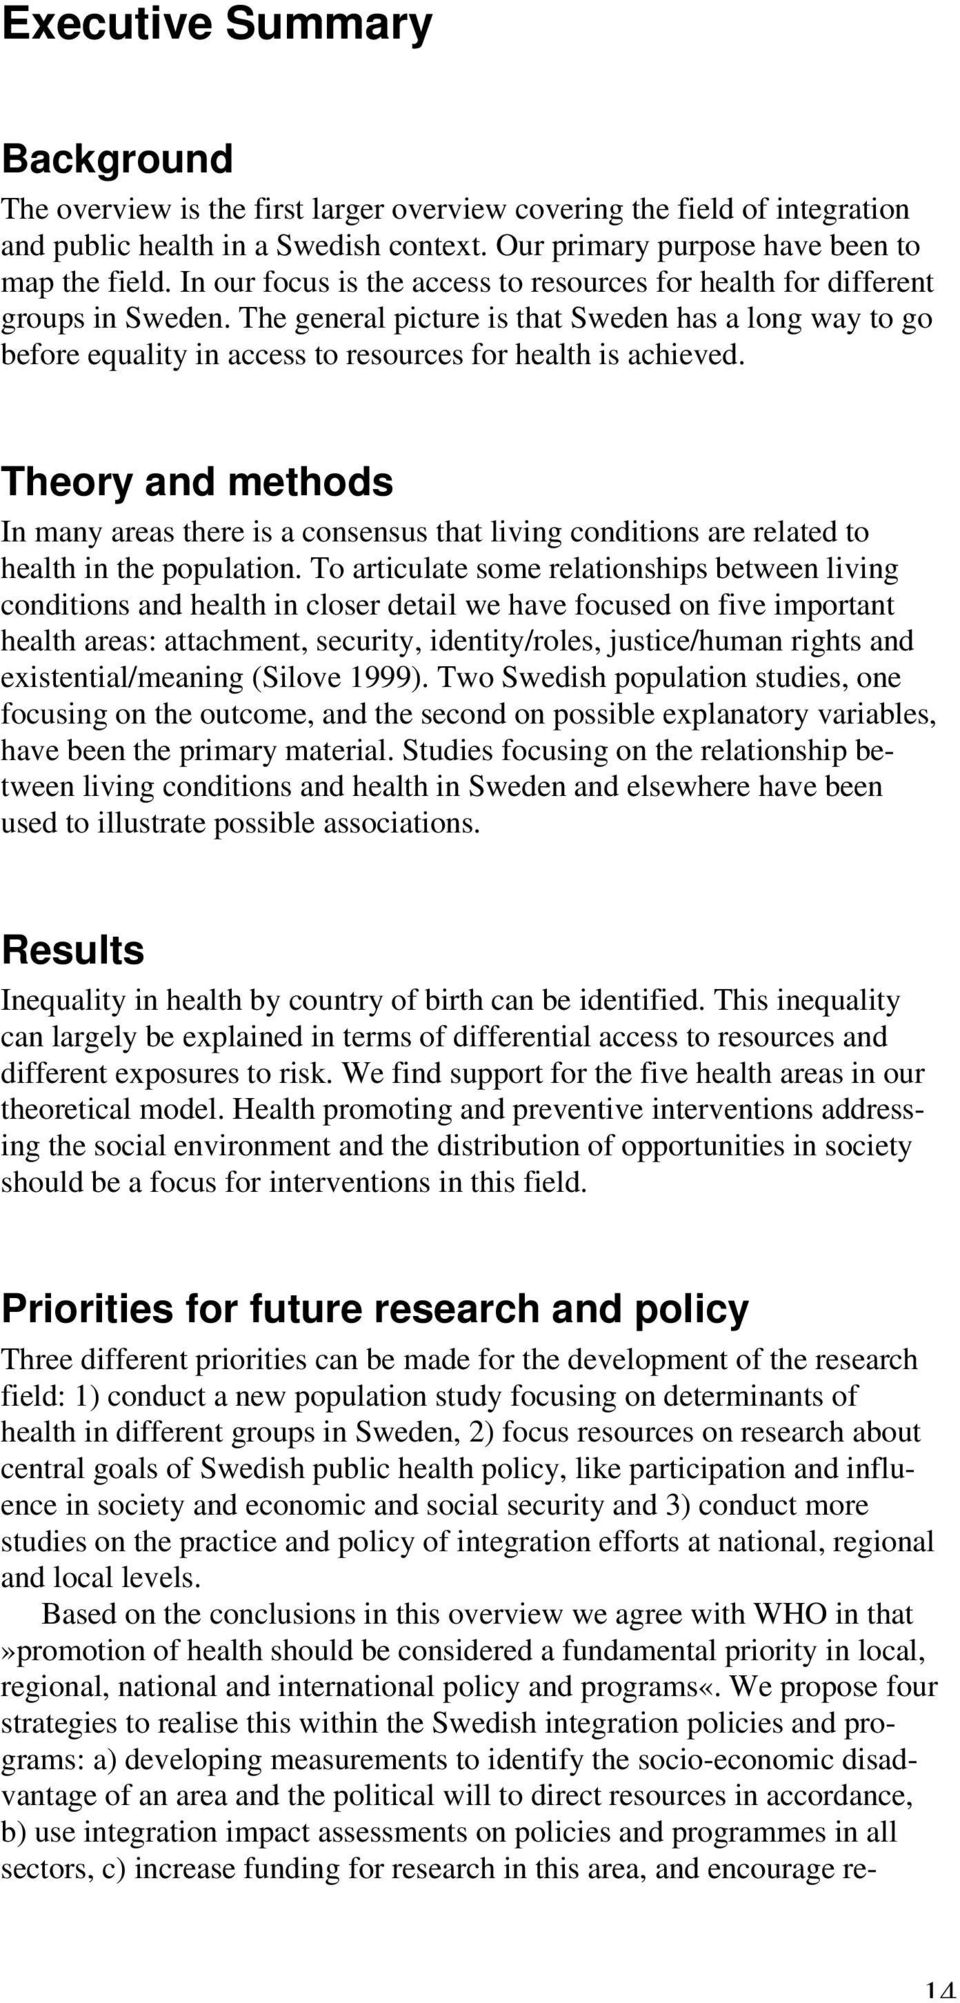 The general picture is that Sweden has a long way to go before equality in access to resources for health is achieved.